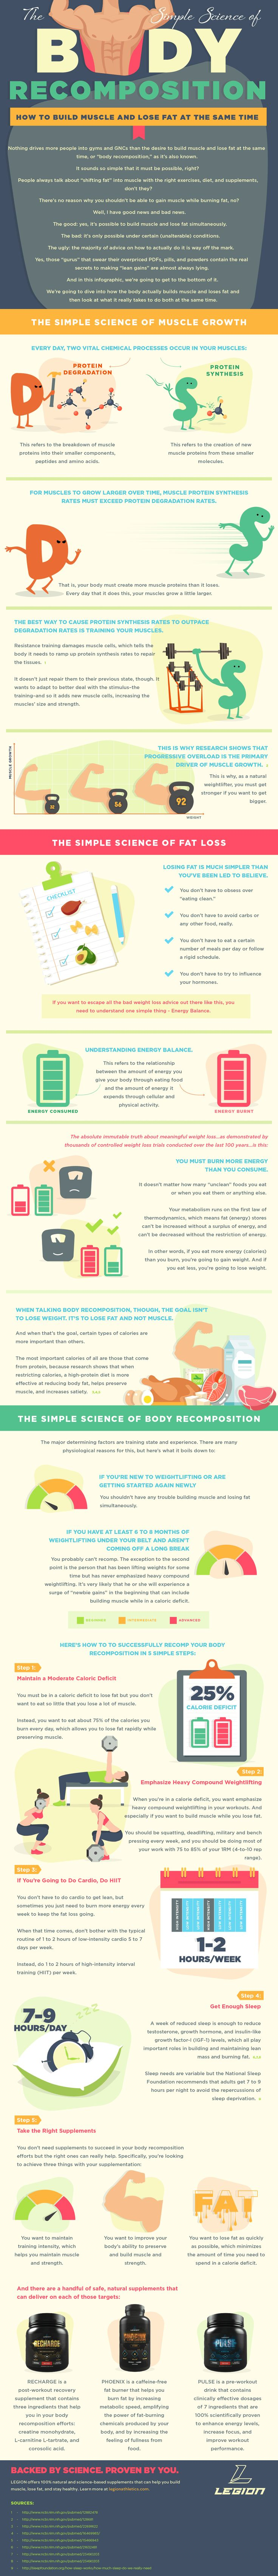 Mike Matthews - Muscle for Life - Body Recomposition Info Graphic